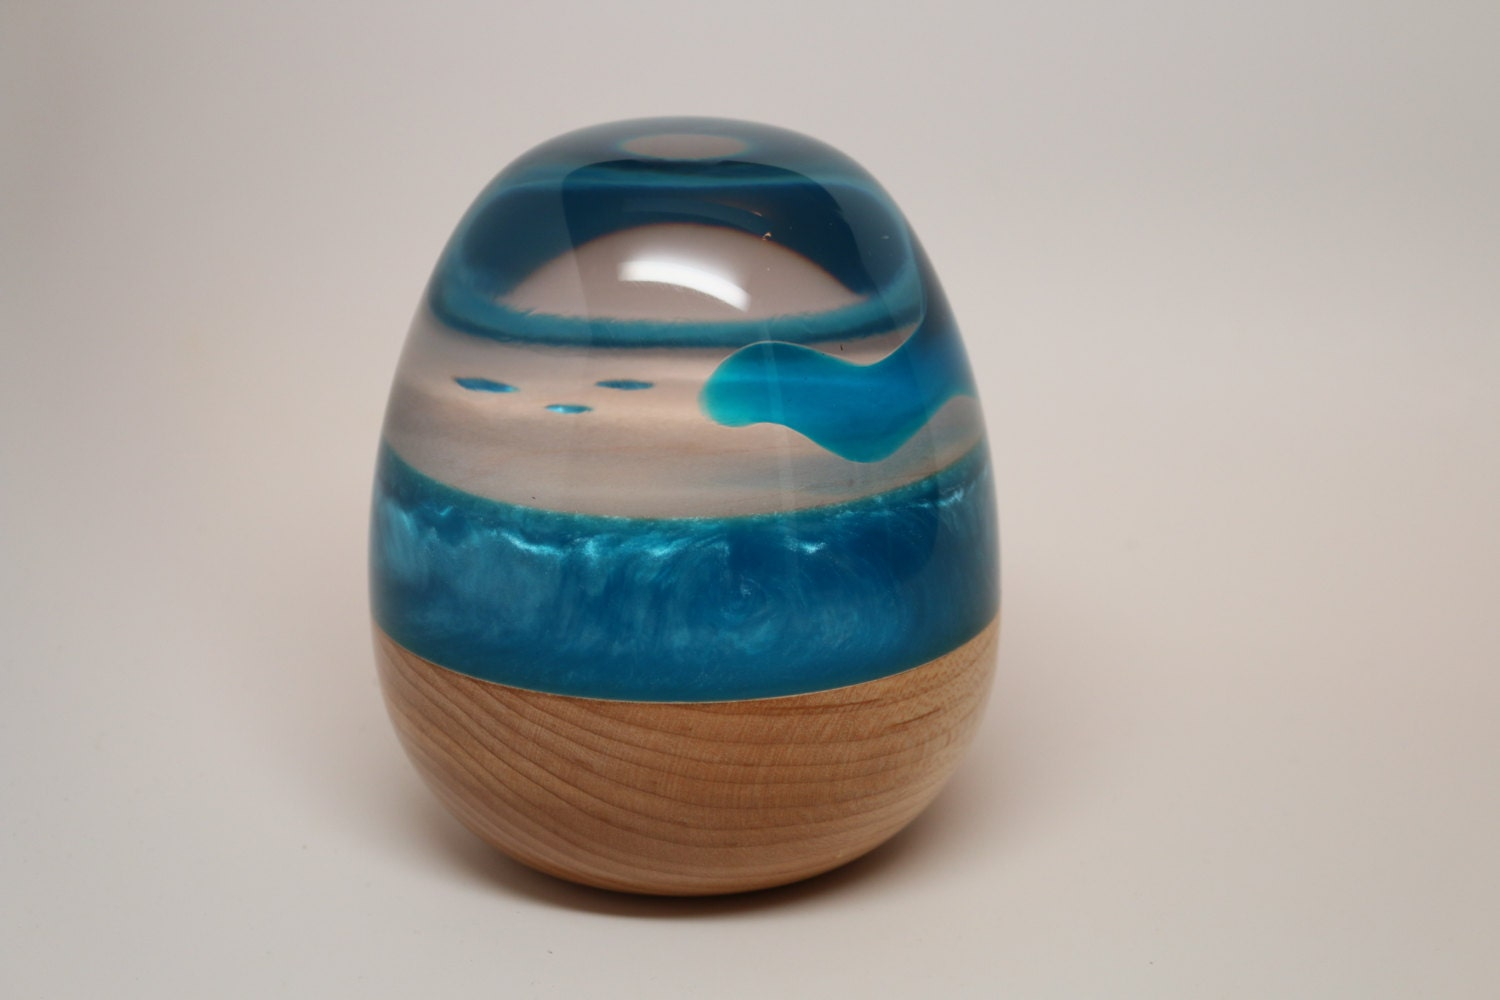 Handmade Wooden Egg Sculpture made of Maple Wood  for Clear Resin Sculpture  195sfw